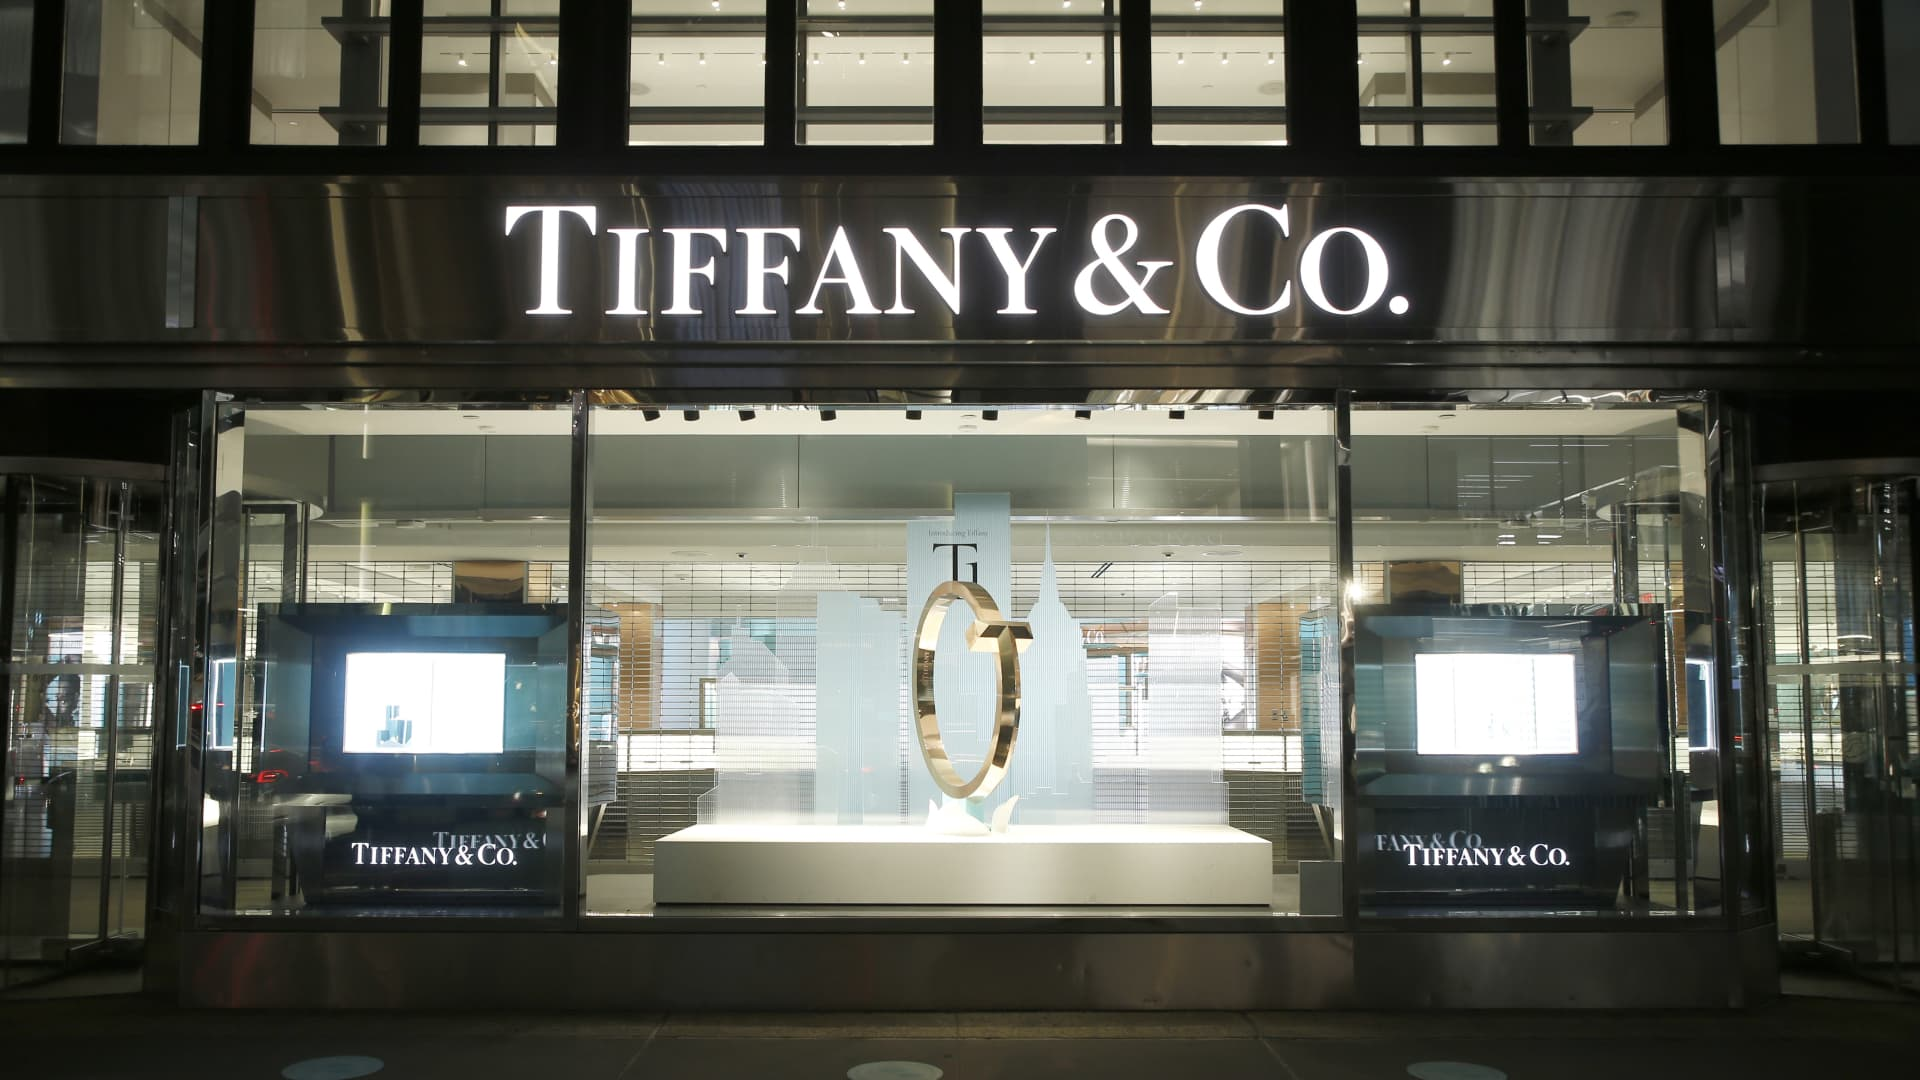 A Tiffany & Co. store front in Mid-Town, New York.